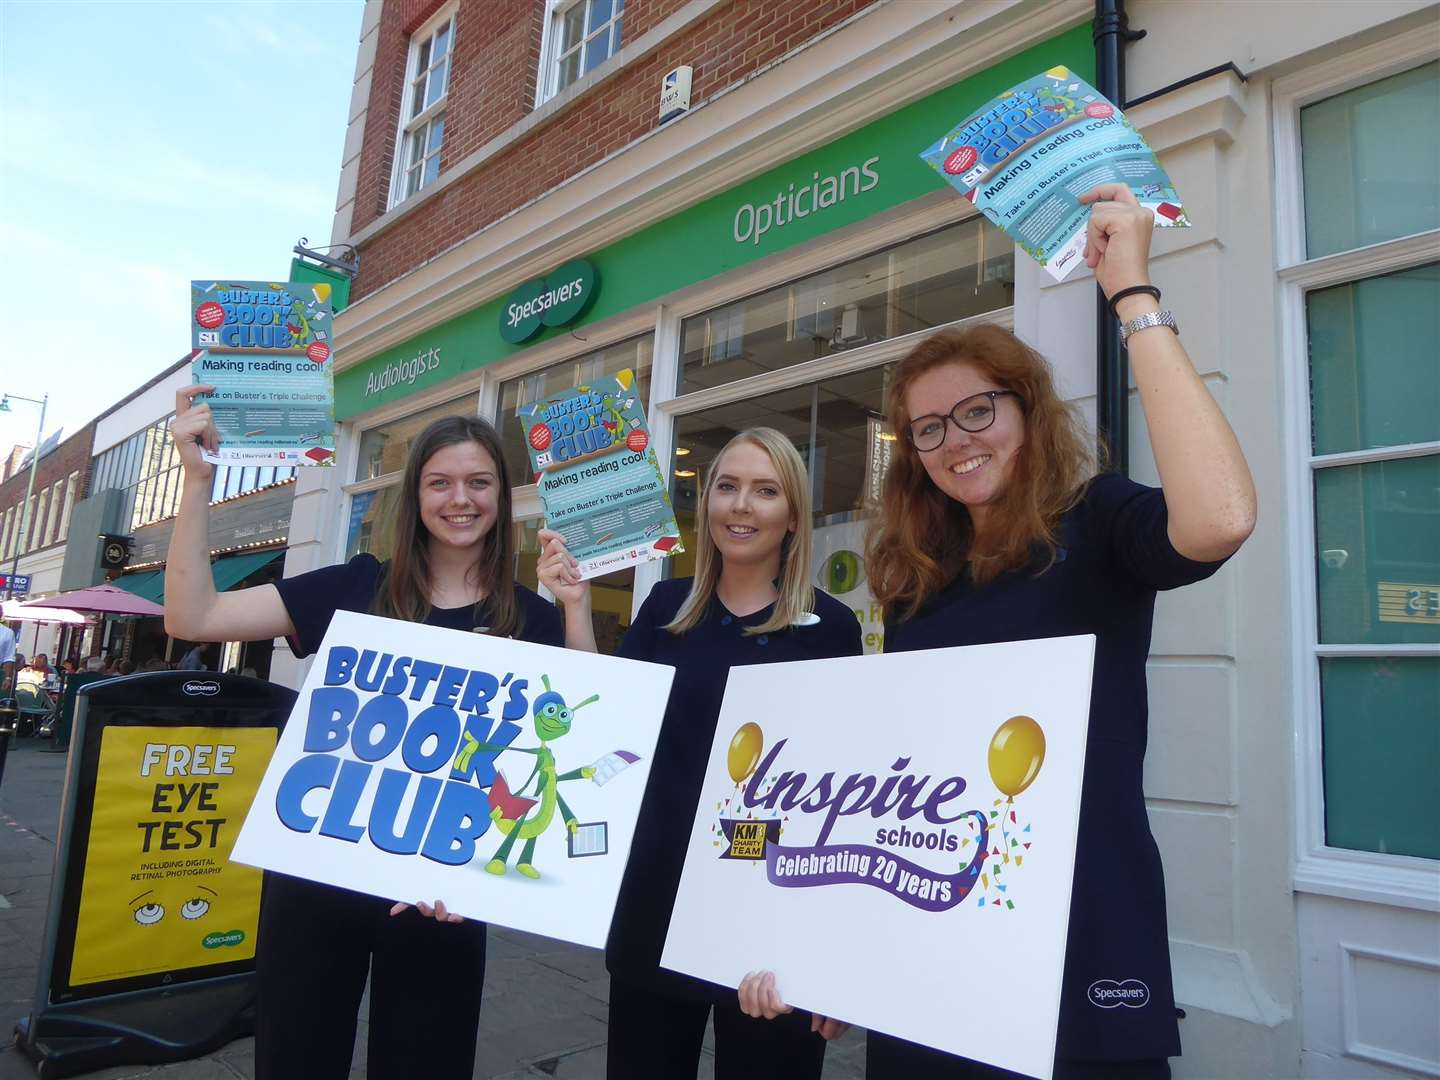 Aine Tainsh, Chloe McGregor and Jess Homes of Specsavers Canterbury branch promote Busters Book Club. (16017387)